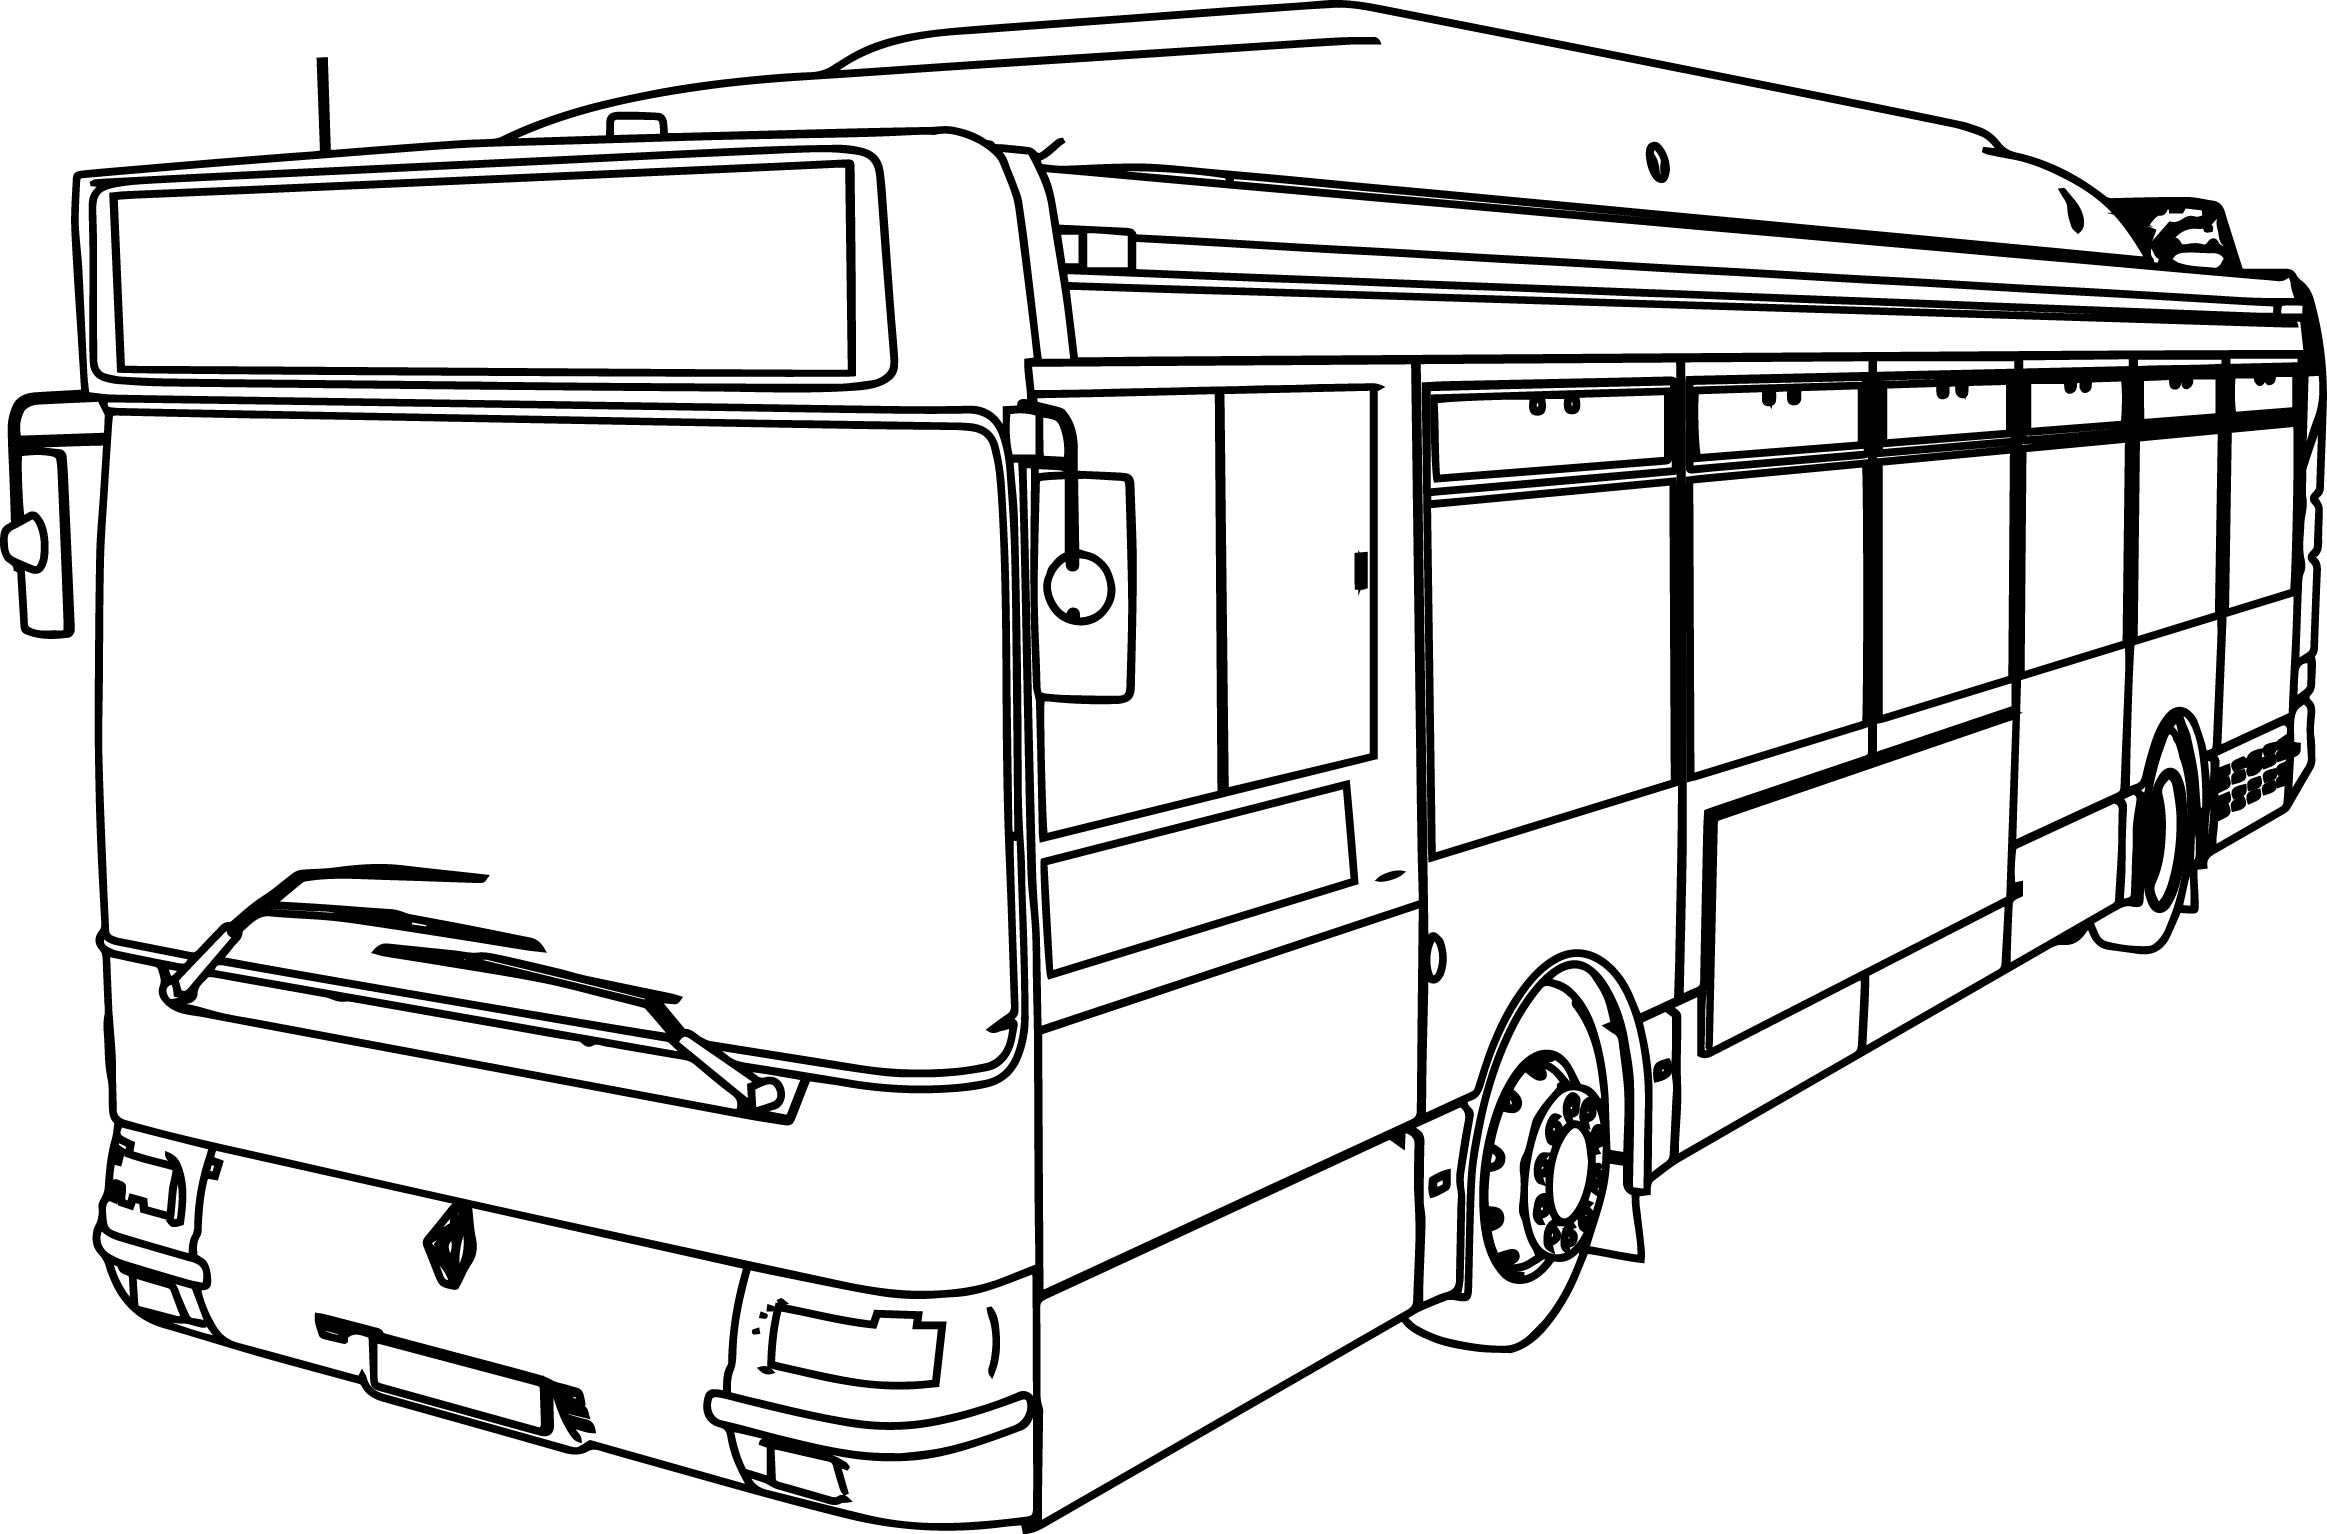 coloring pages bus - photo#20